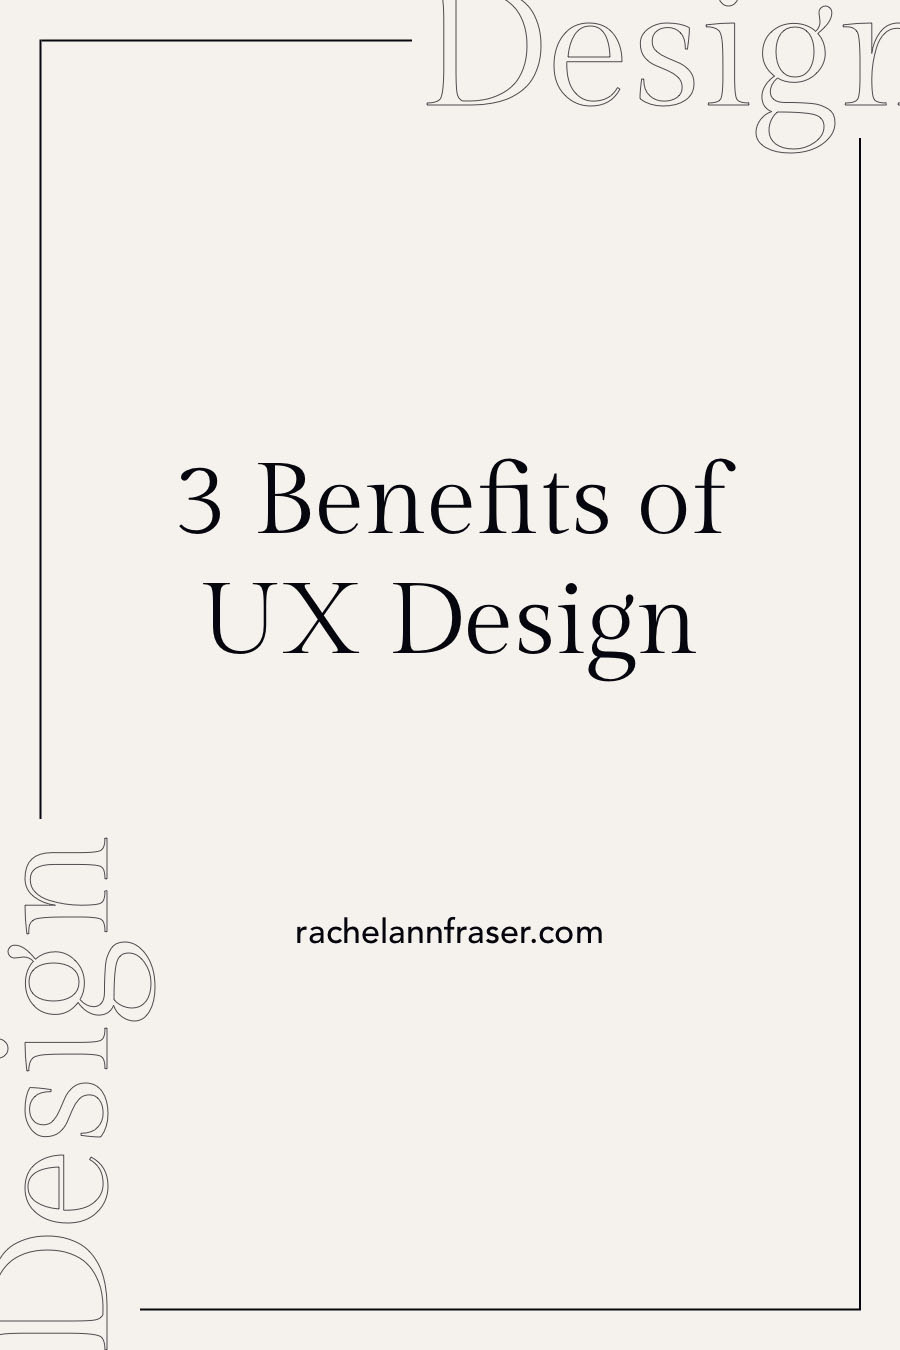 3 Benefits of UX Design